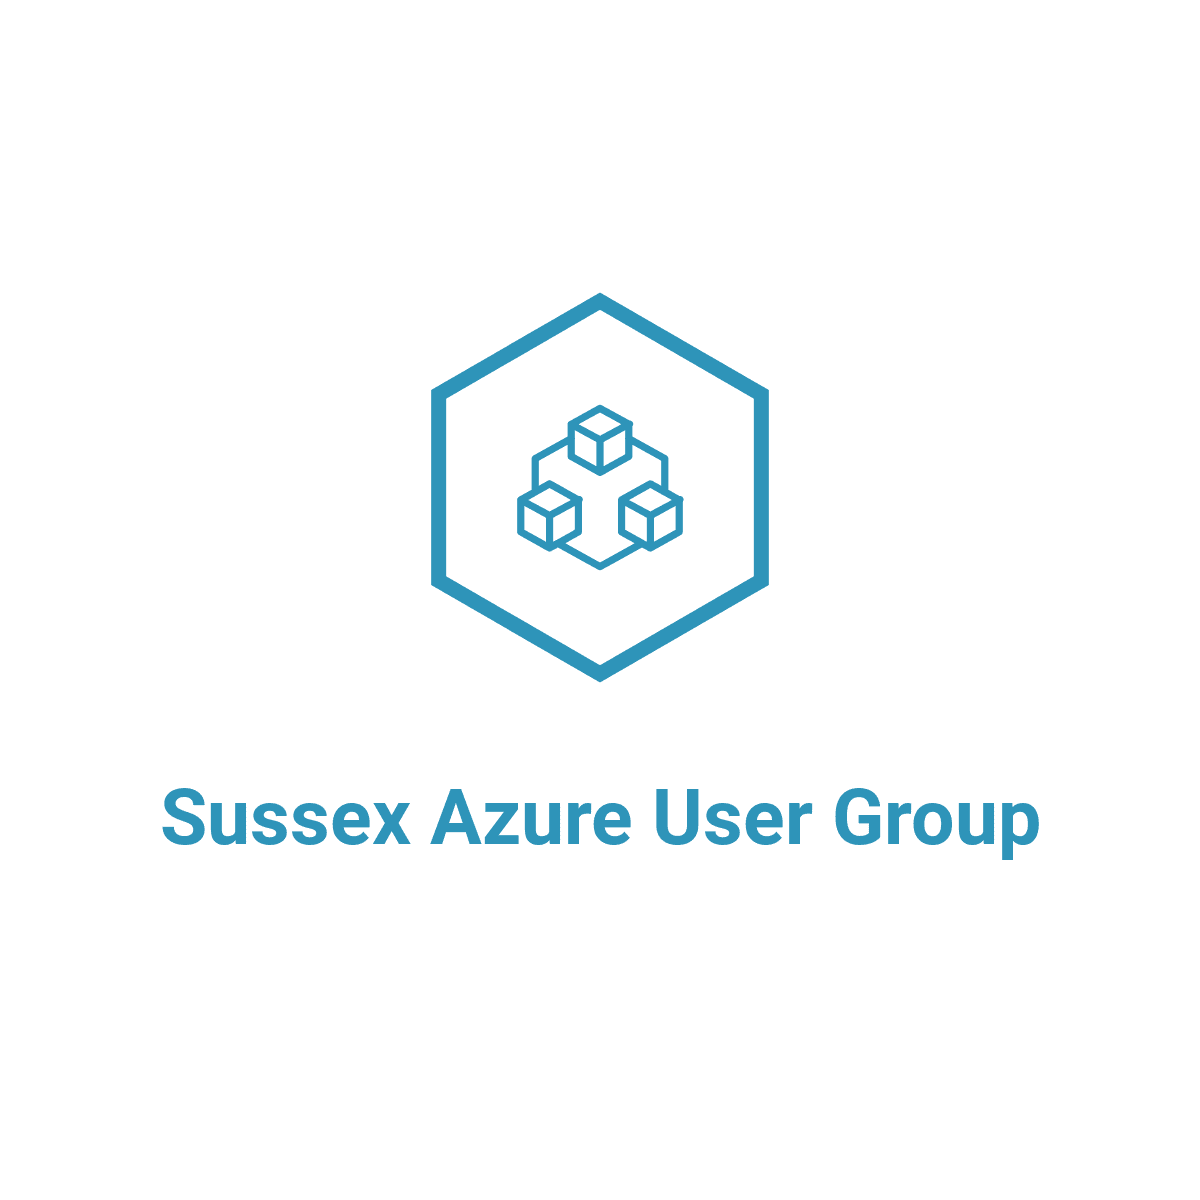 Sussex Azure User Group